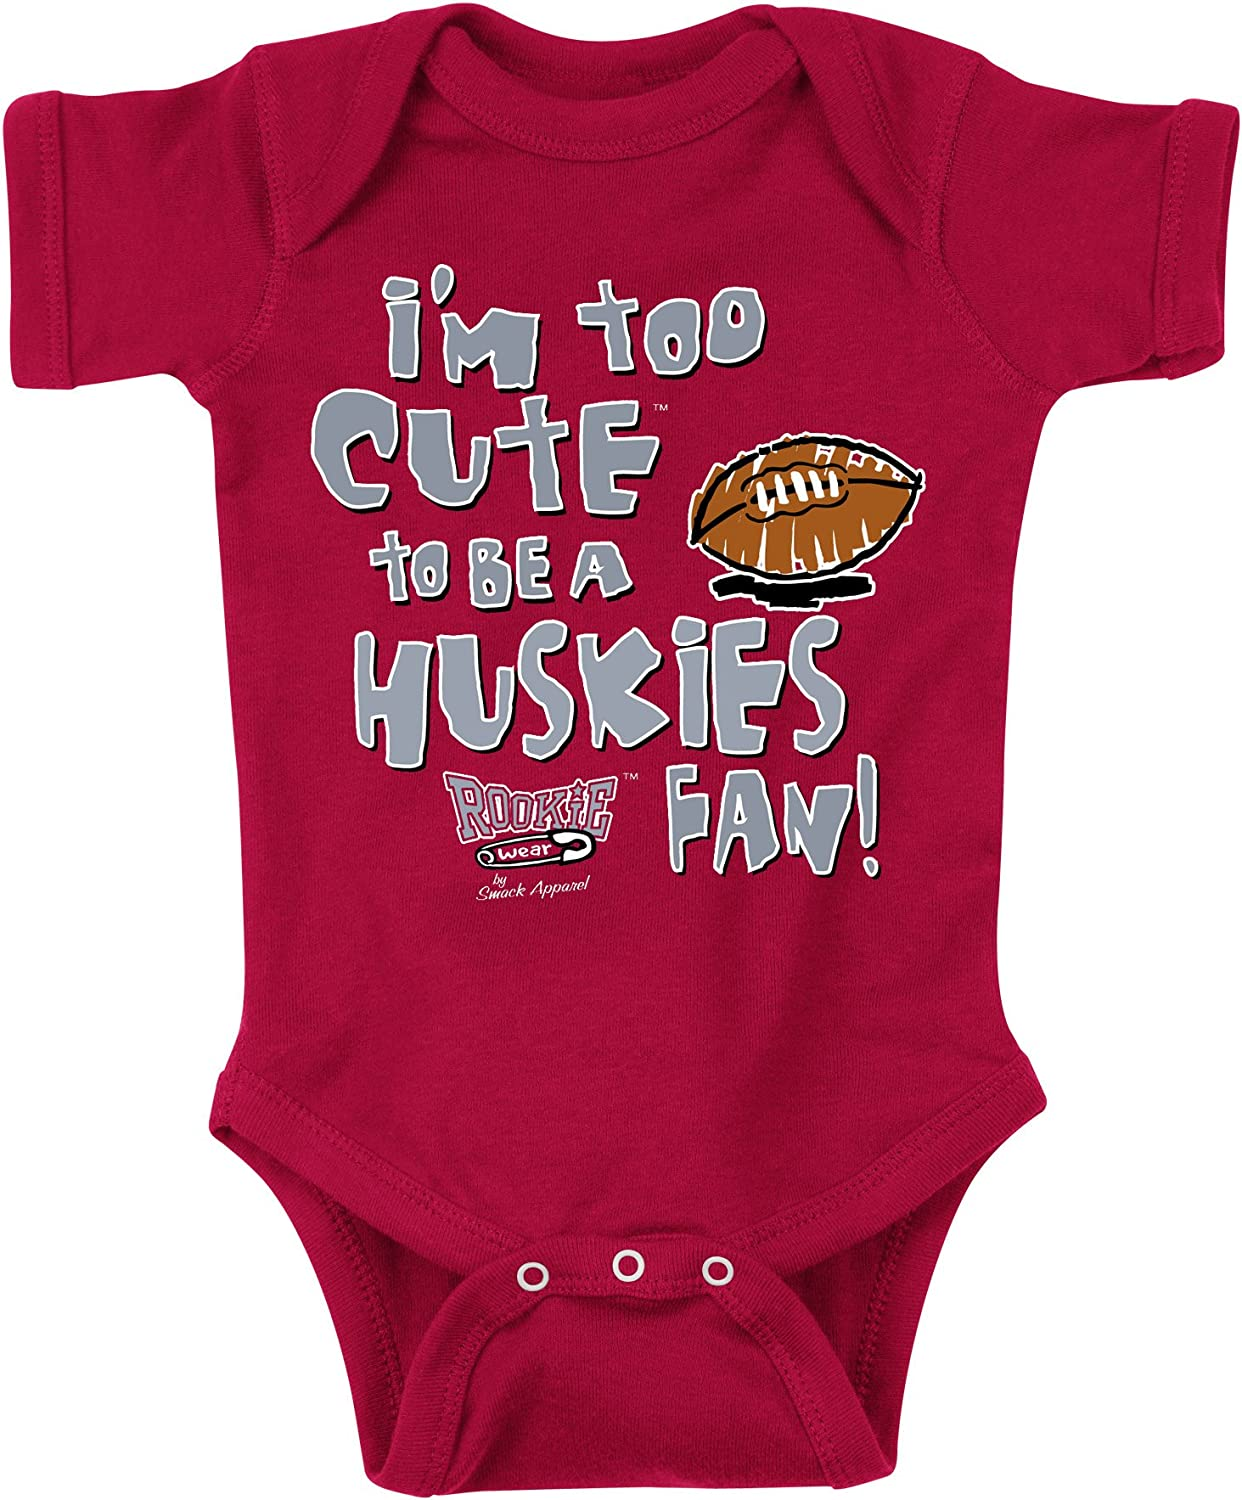 or Toddler Tee Too Cute Onesie Smack Apparel Washington State Football Fans NB-18M 2T-4T